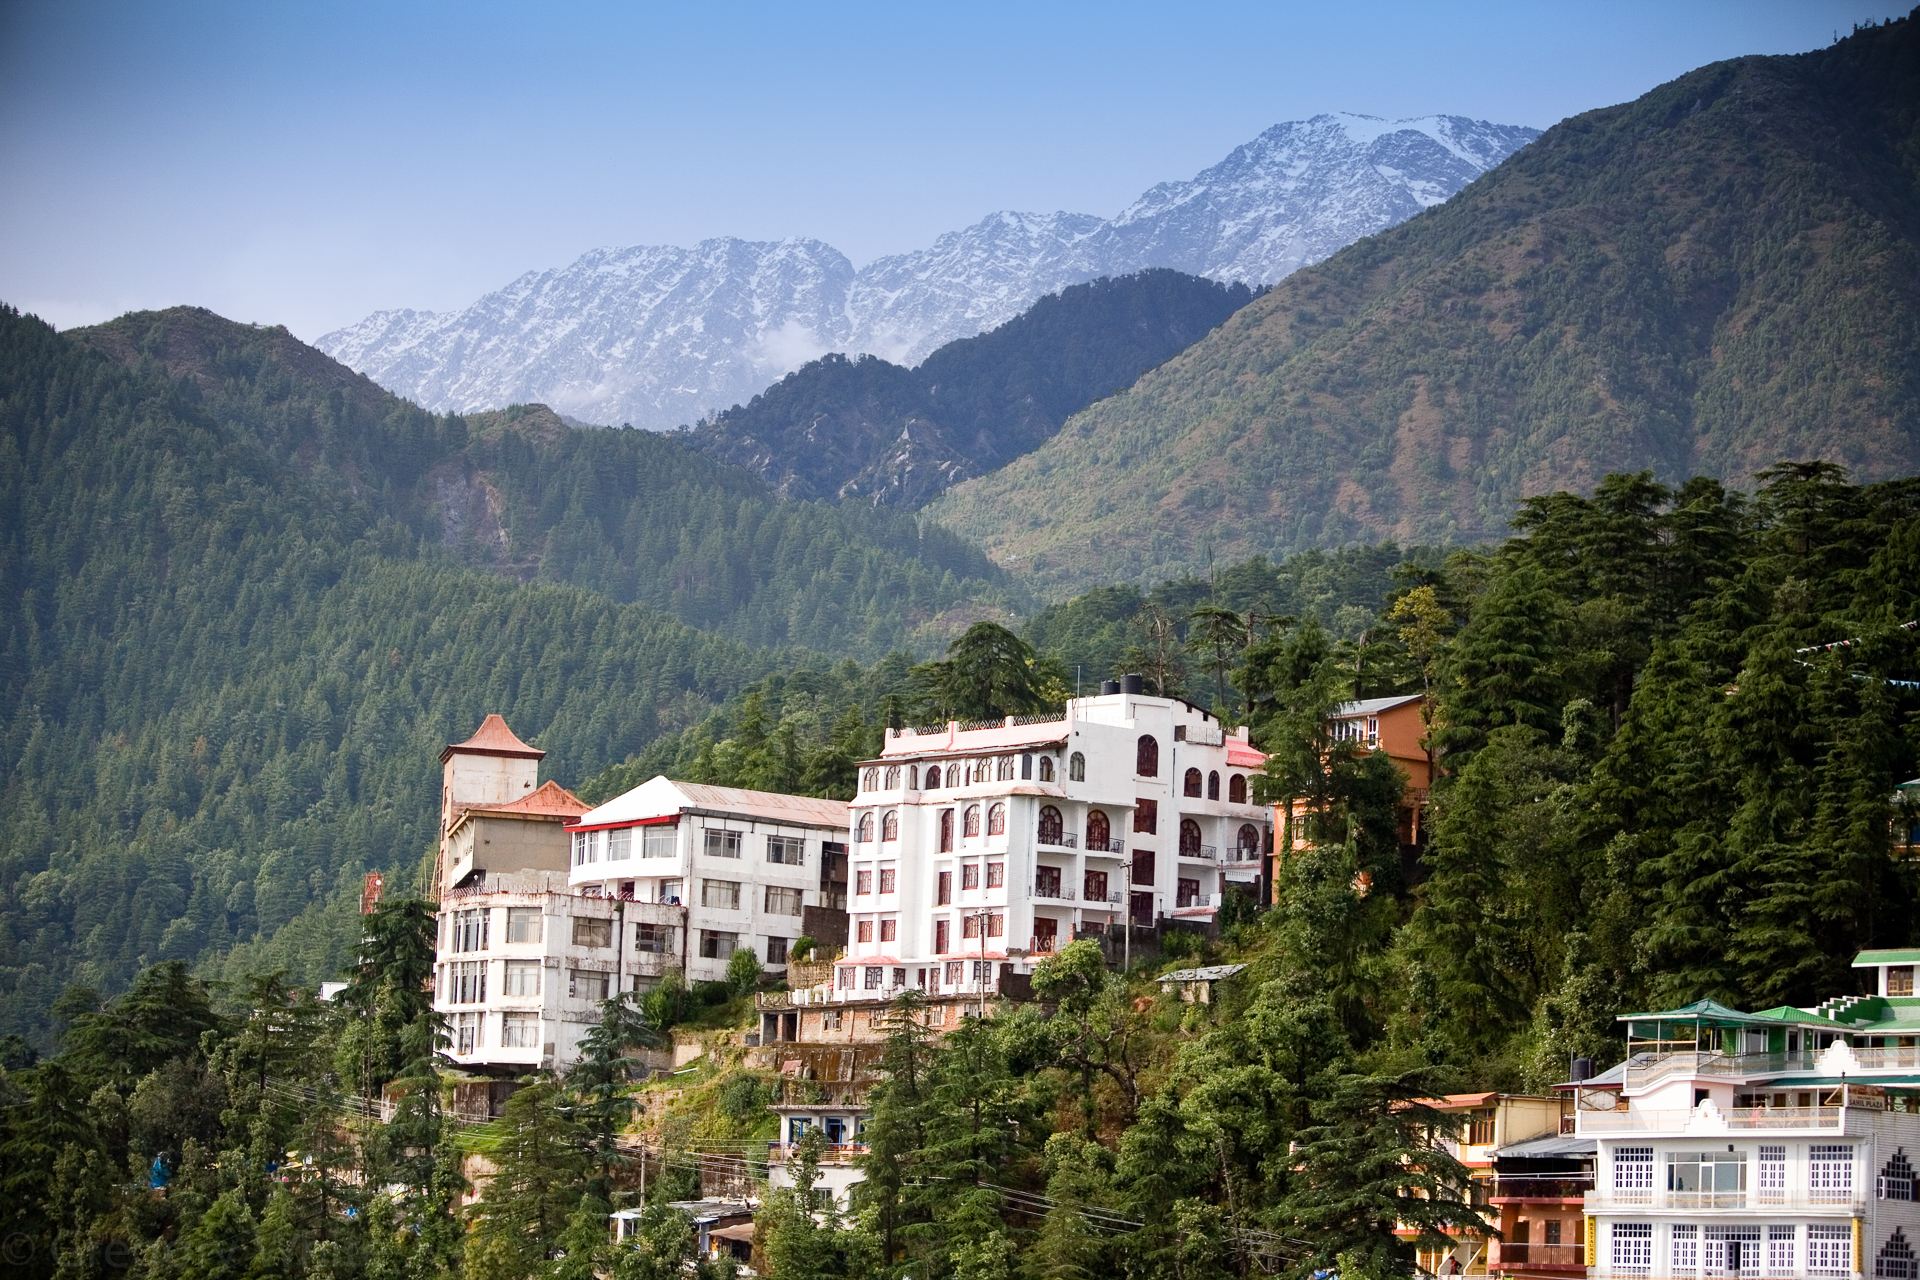 Dharmasala sits in the foothills of the Himalayas and is home to the Dali Lama.